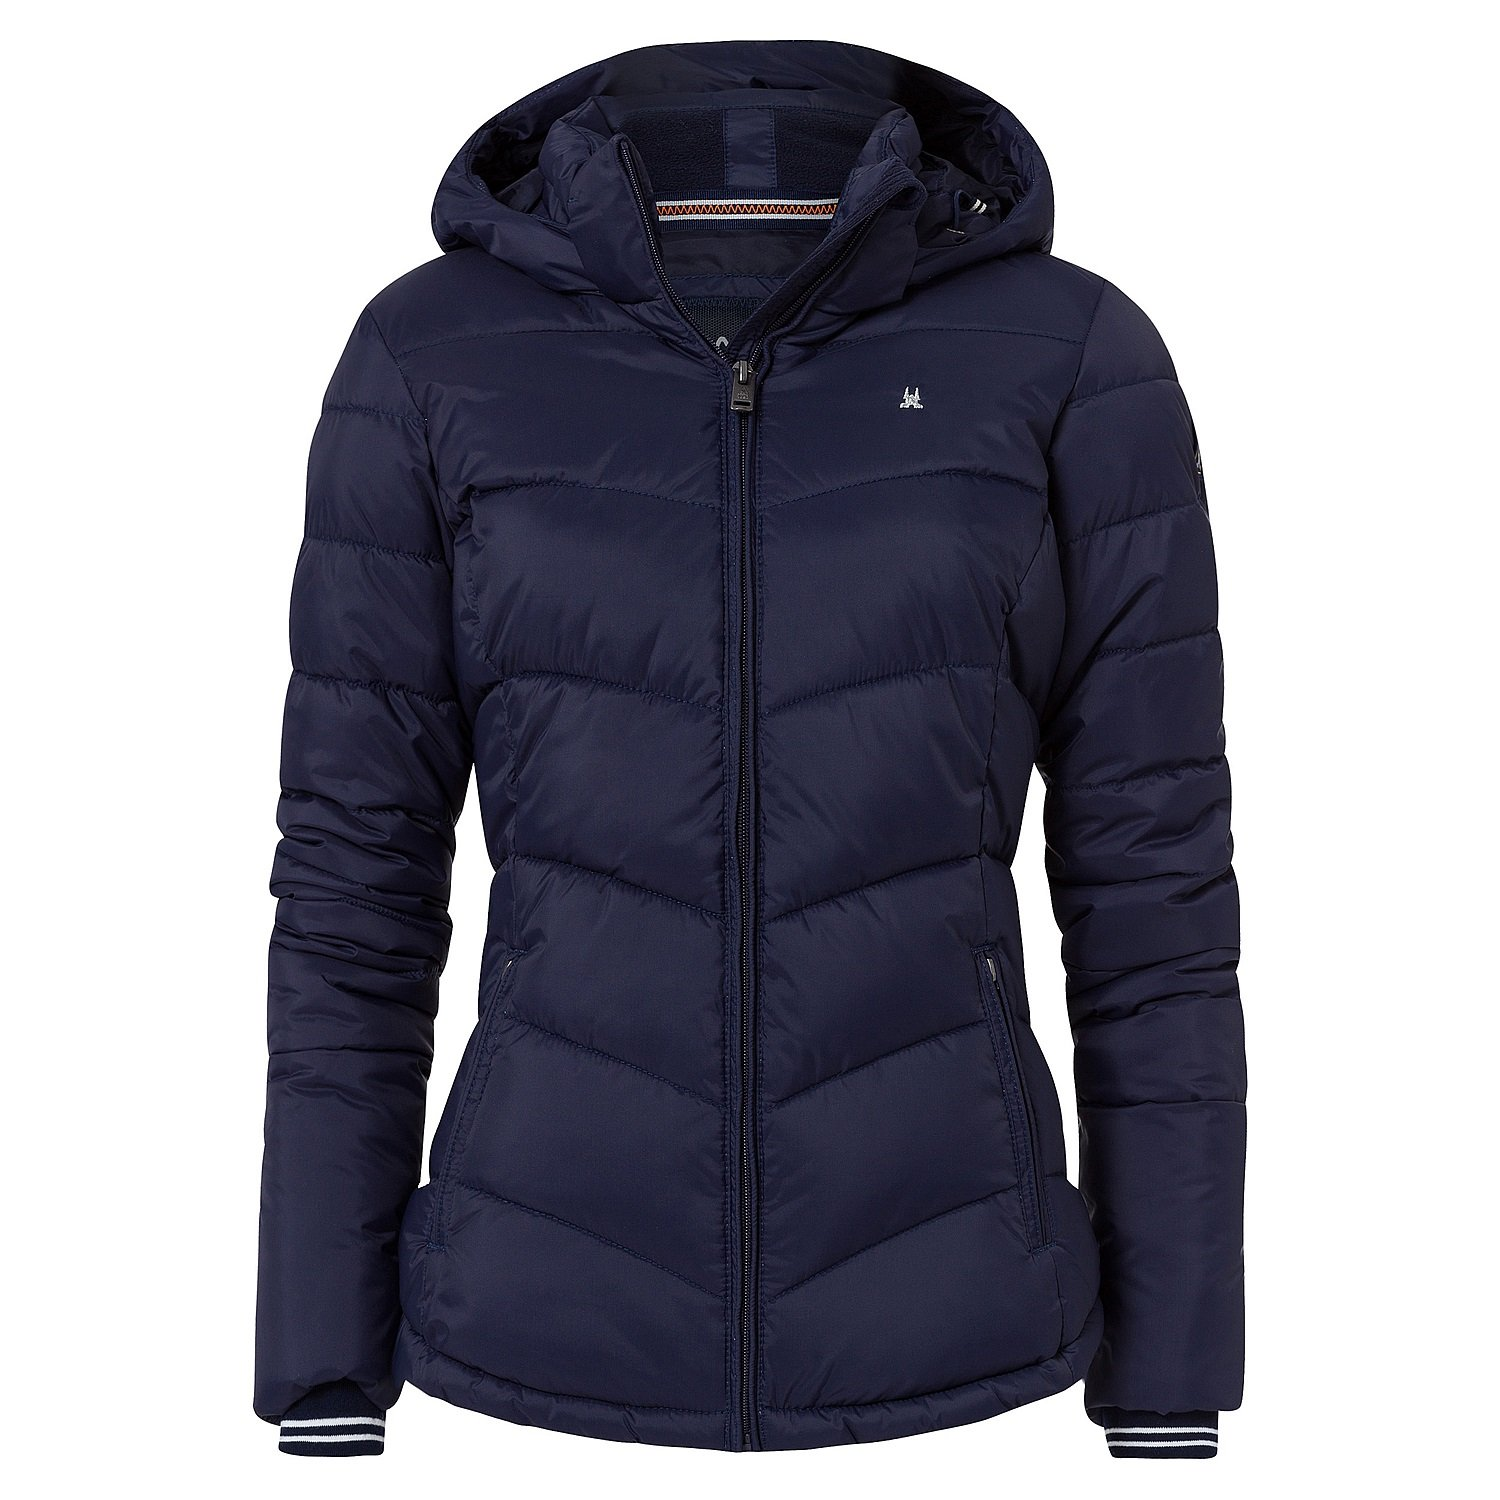 Gaastra Damen Jacke Davy Jones